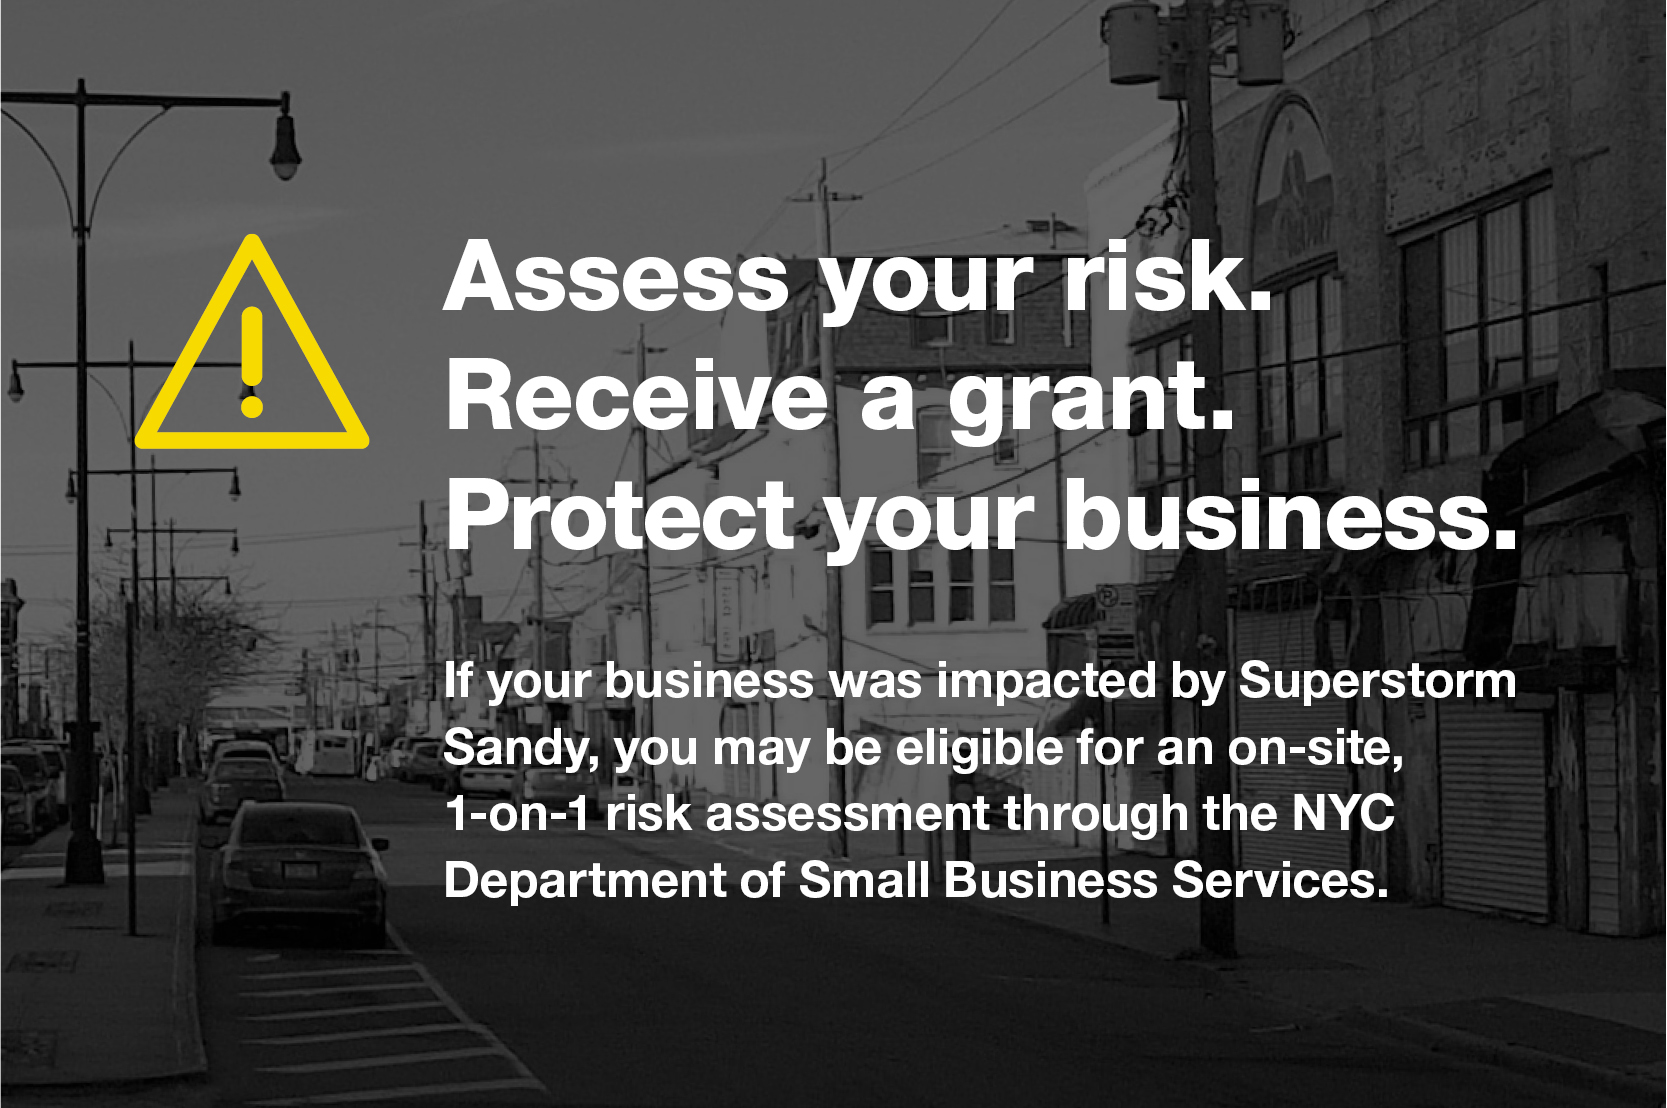 Assess your risk. Receive a grant. Protect your business.